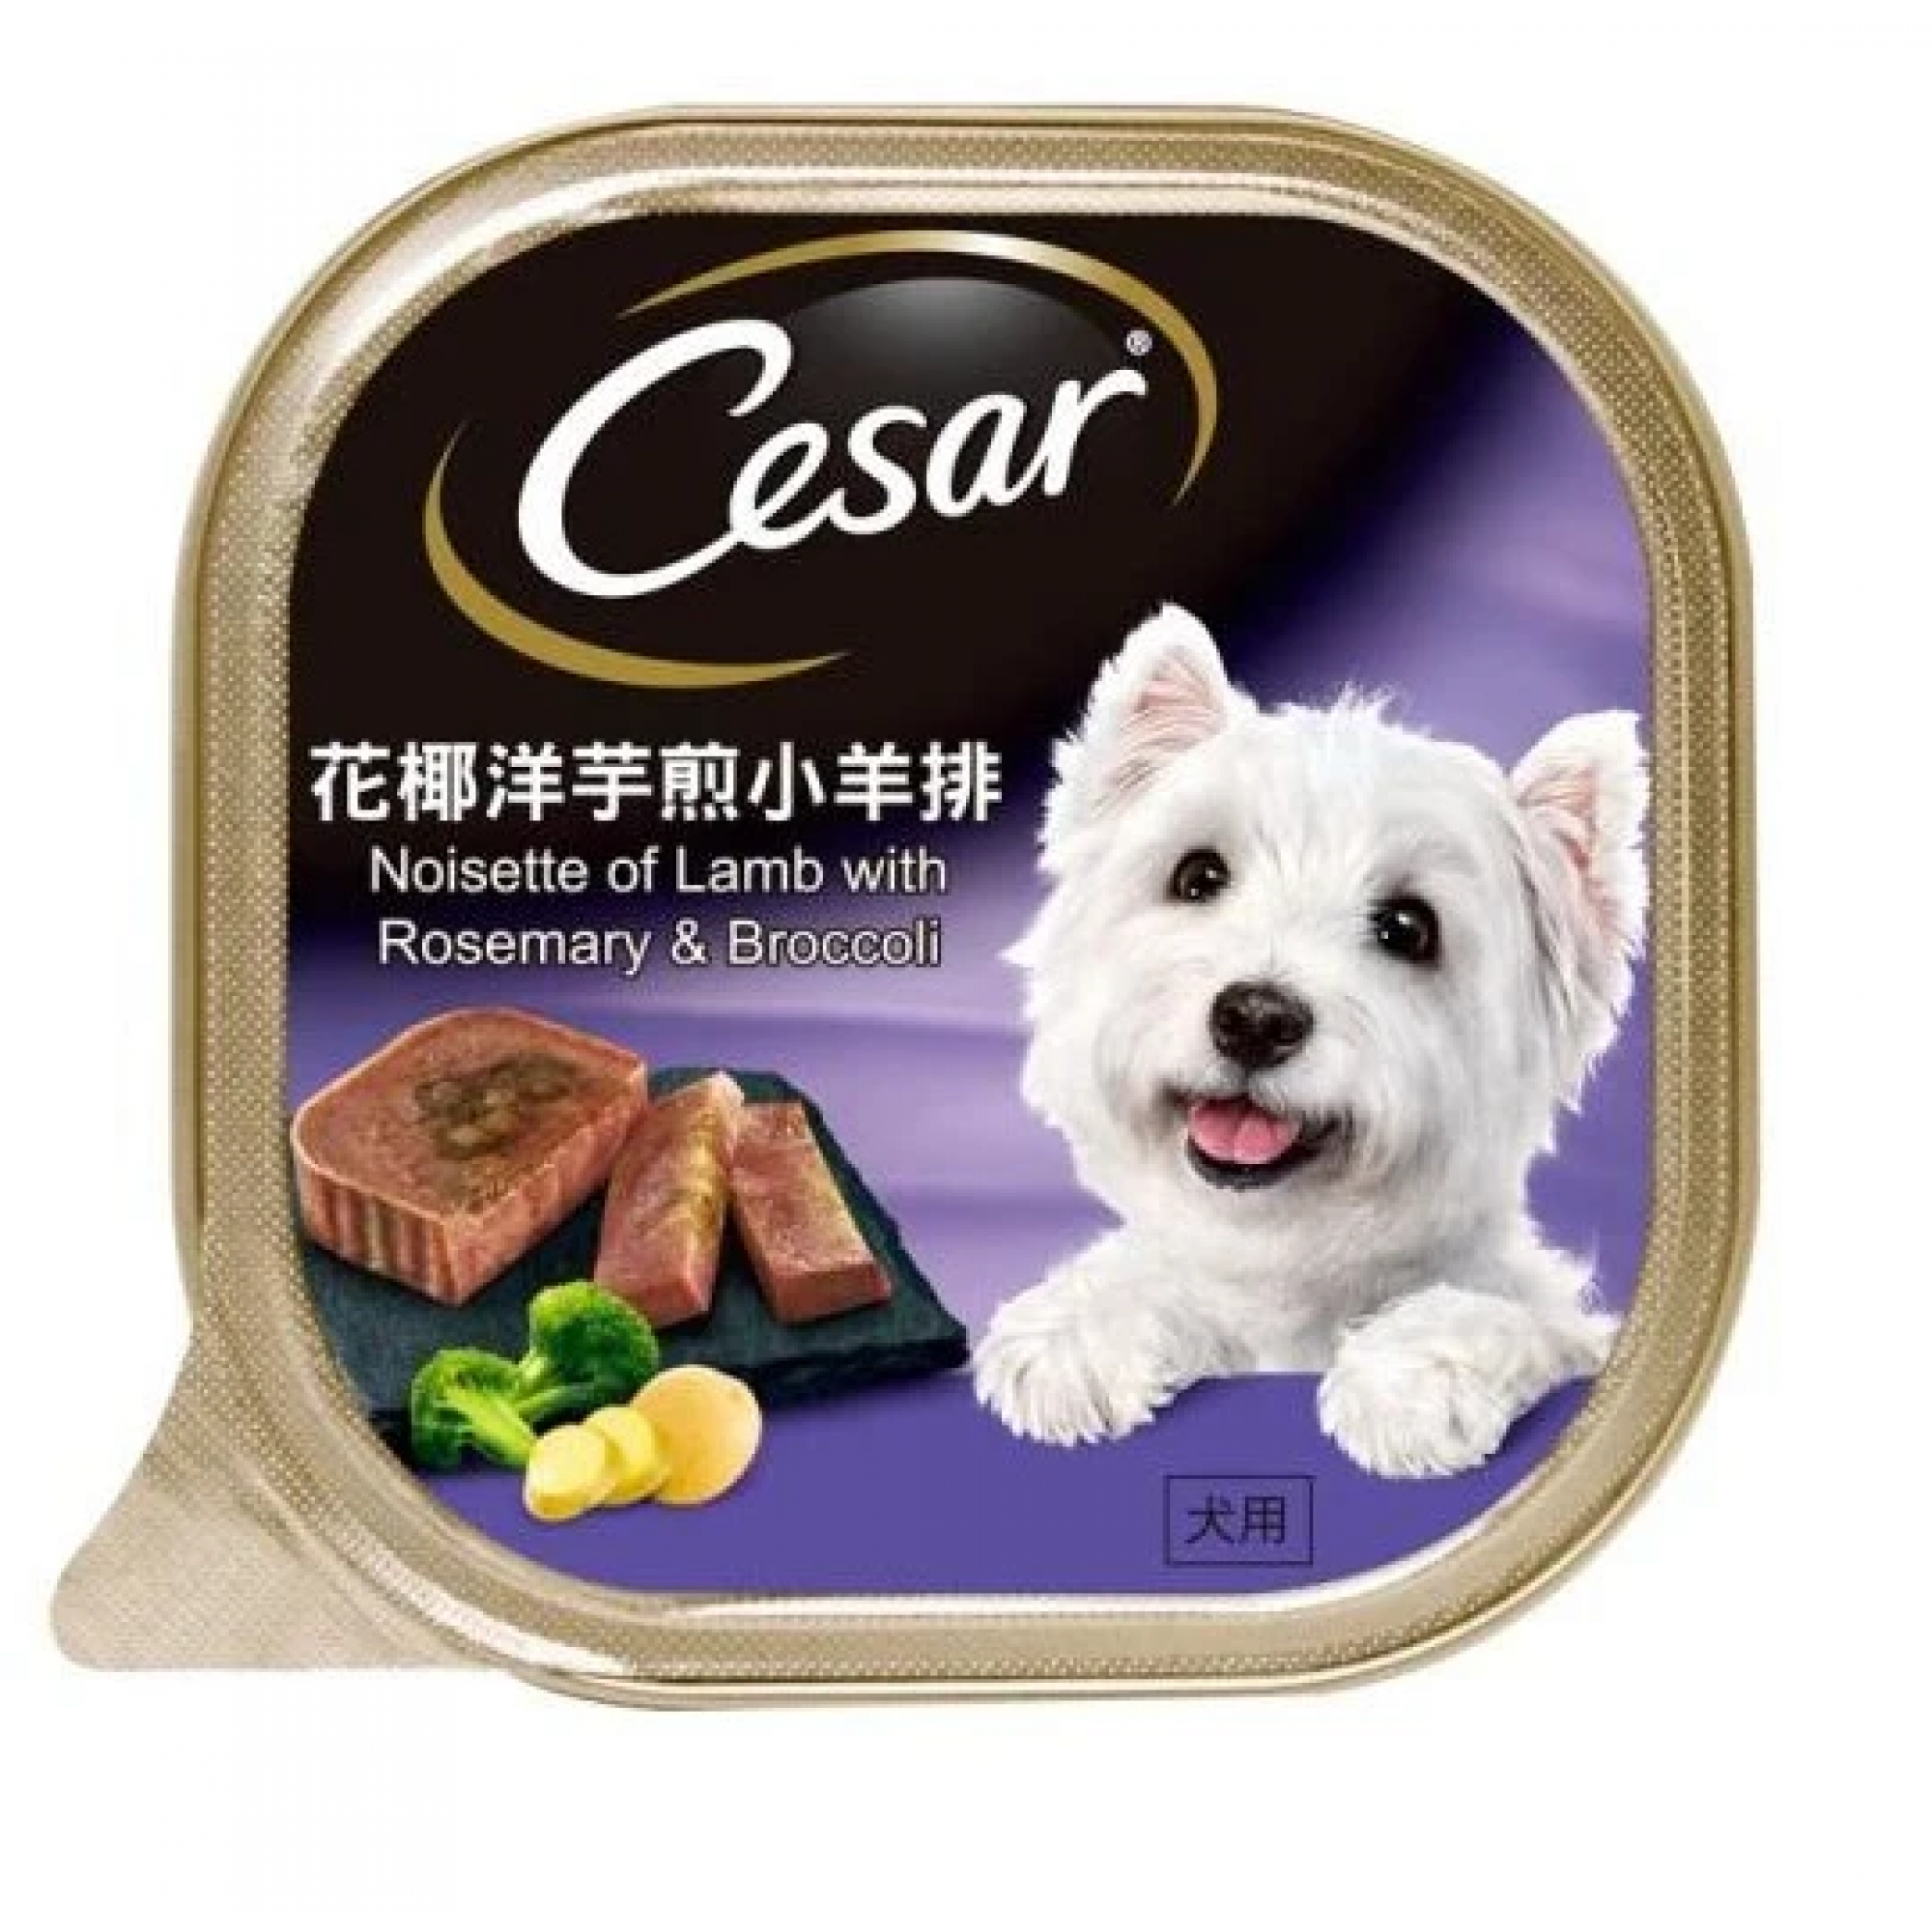 Cesar - Noisette of Lamb with Rosemary & Broccoli Pate Dog Food 100g